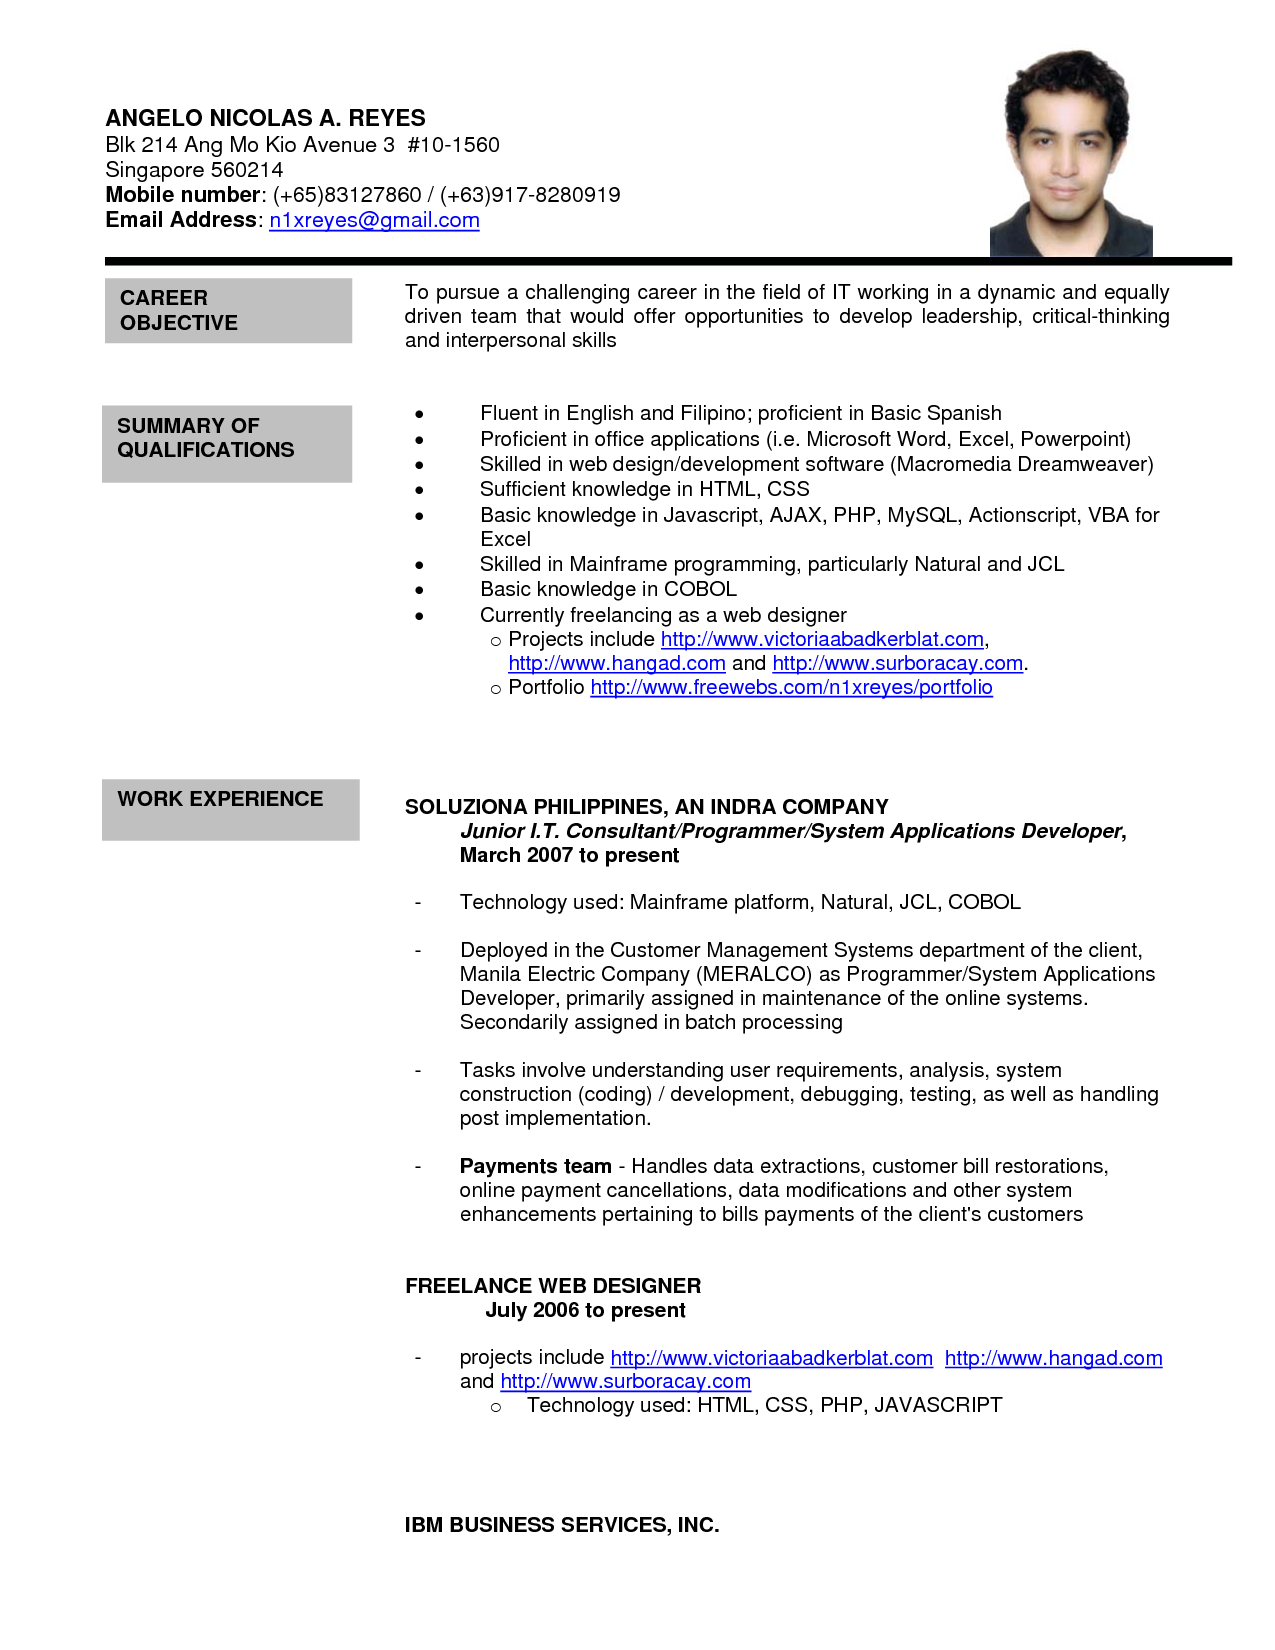 Dazzling Design Inspiration Student Resume Examples        Best         Dazzling Design Inspiration Student Resume Examples        Best Images  About Resume Templates And CV Reference